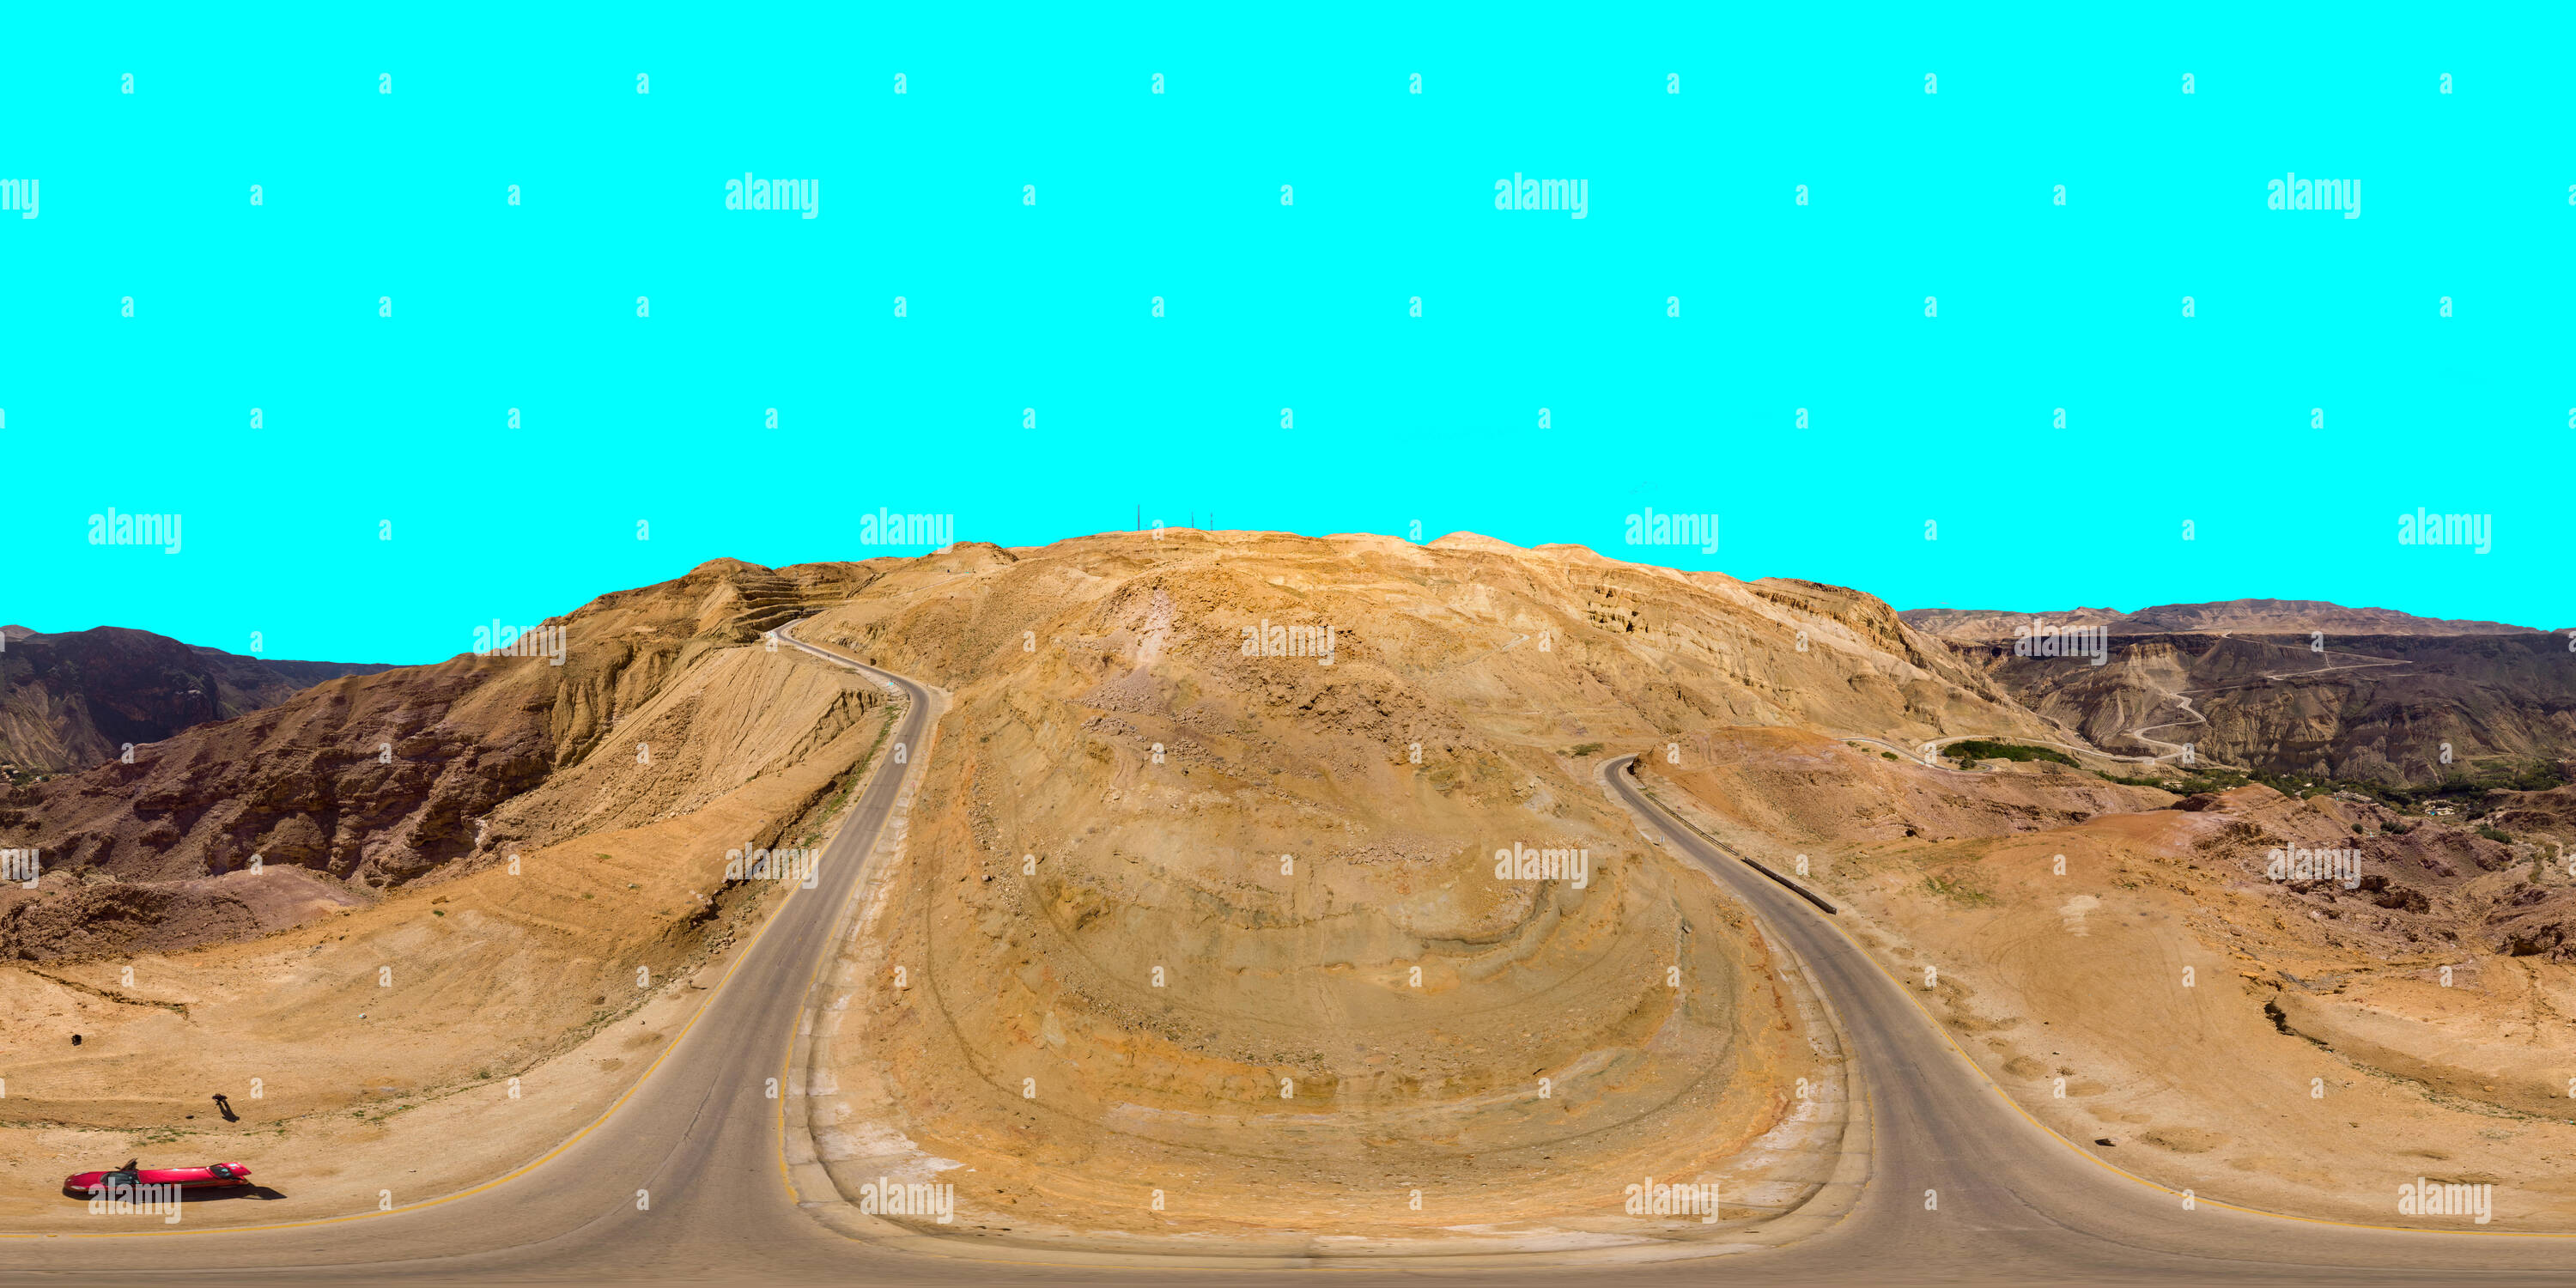 Aerial view from the main road along the Dead Sea, taken with the drone close to the rocks of the ascending mountains, 360 gegree panorama image with  - Stock Image